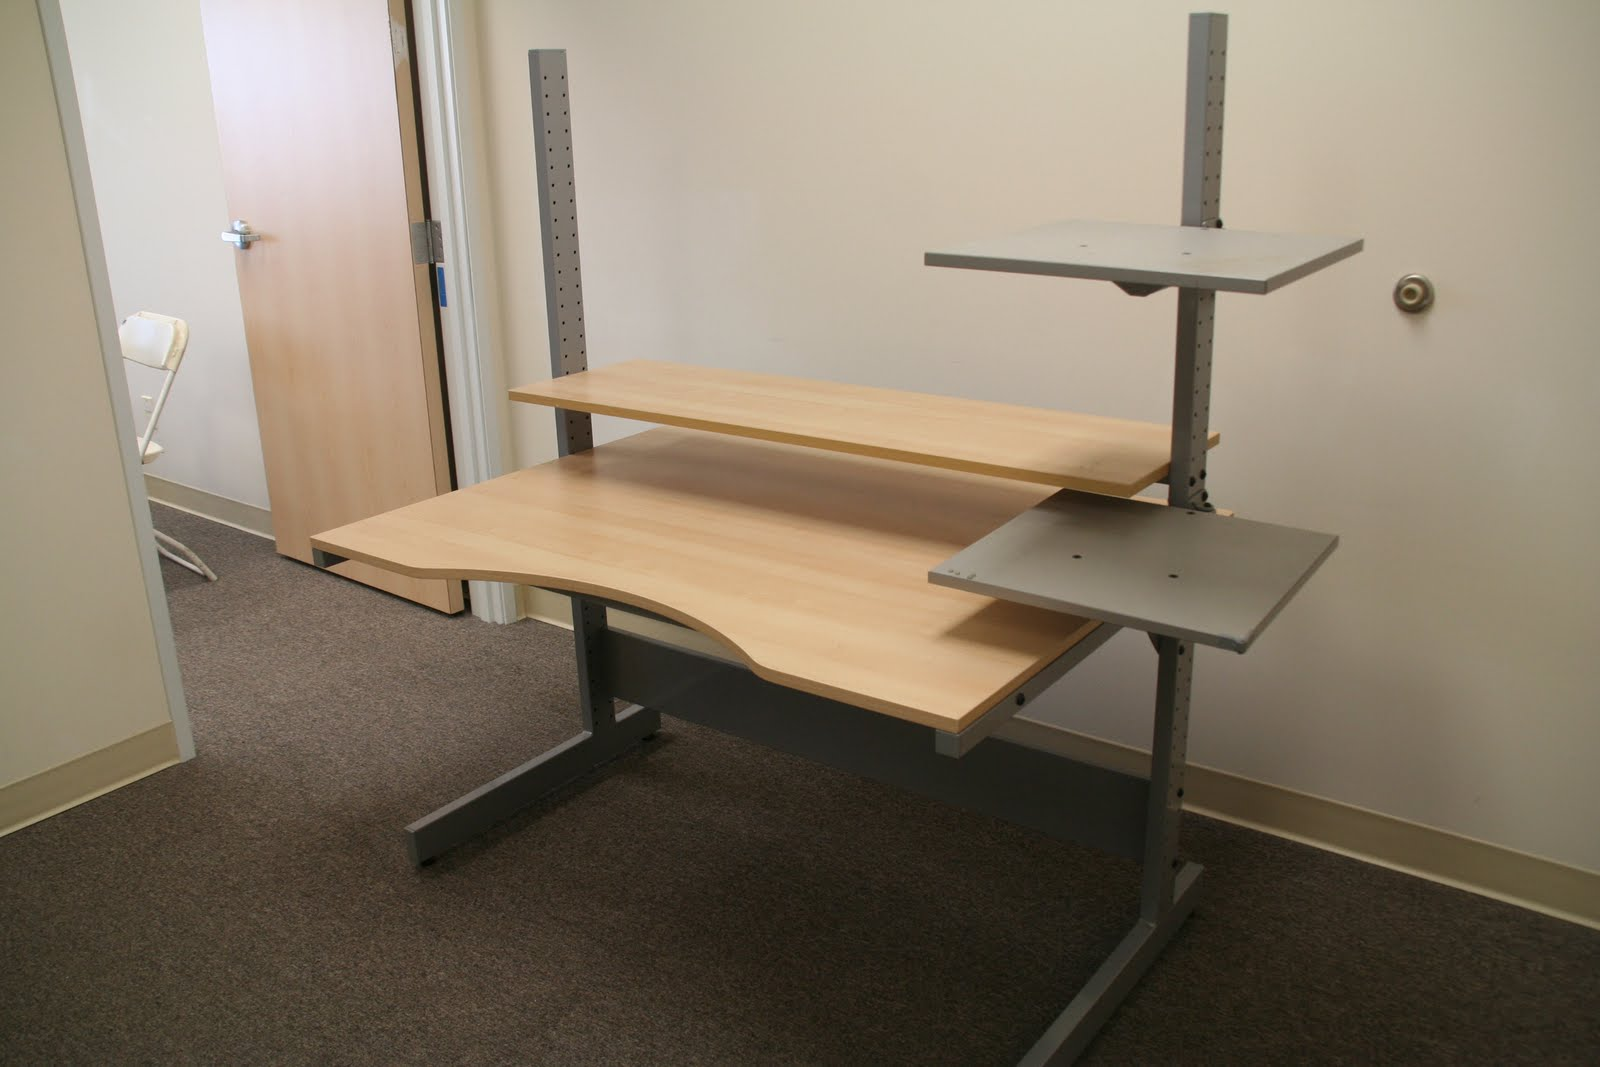 Items For Sale: Ikea Office Desk with Shelf ($100)